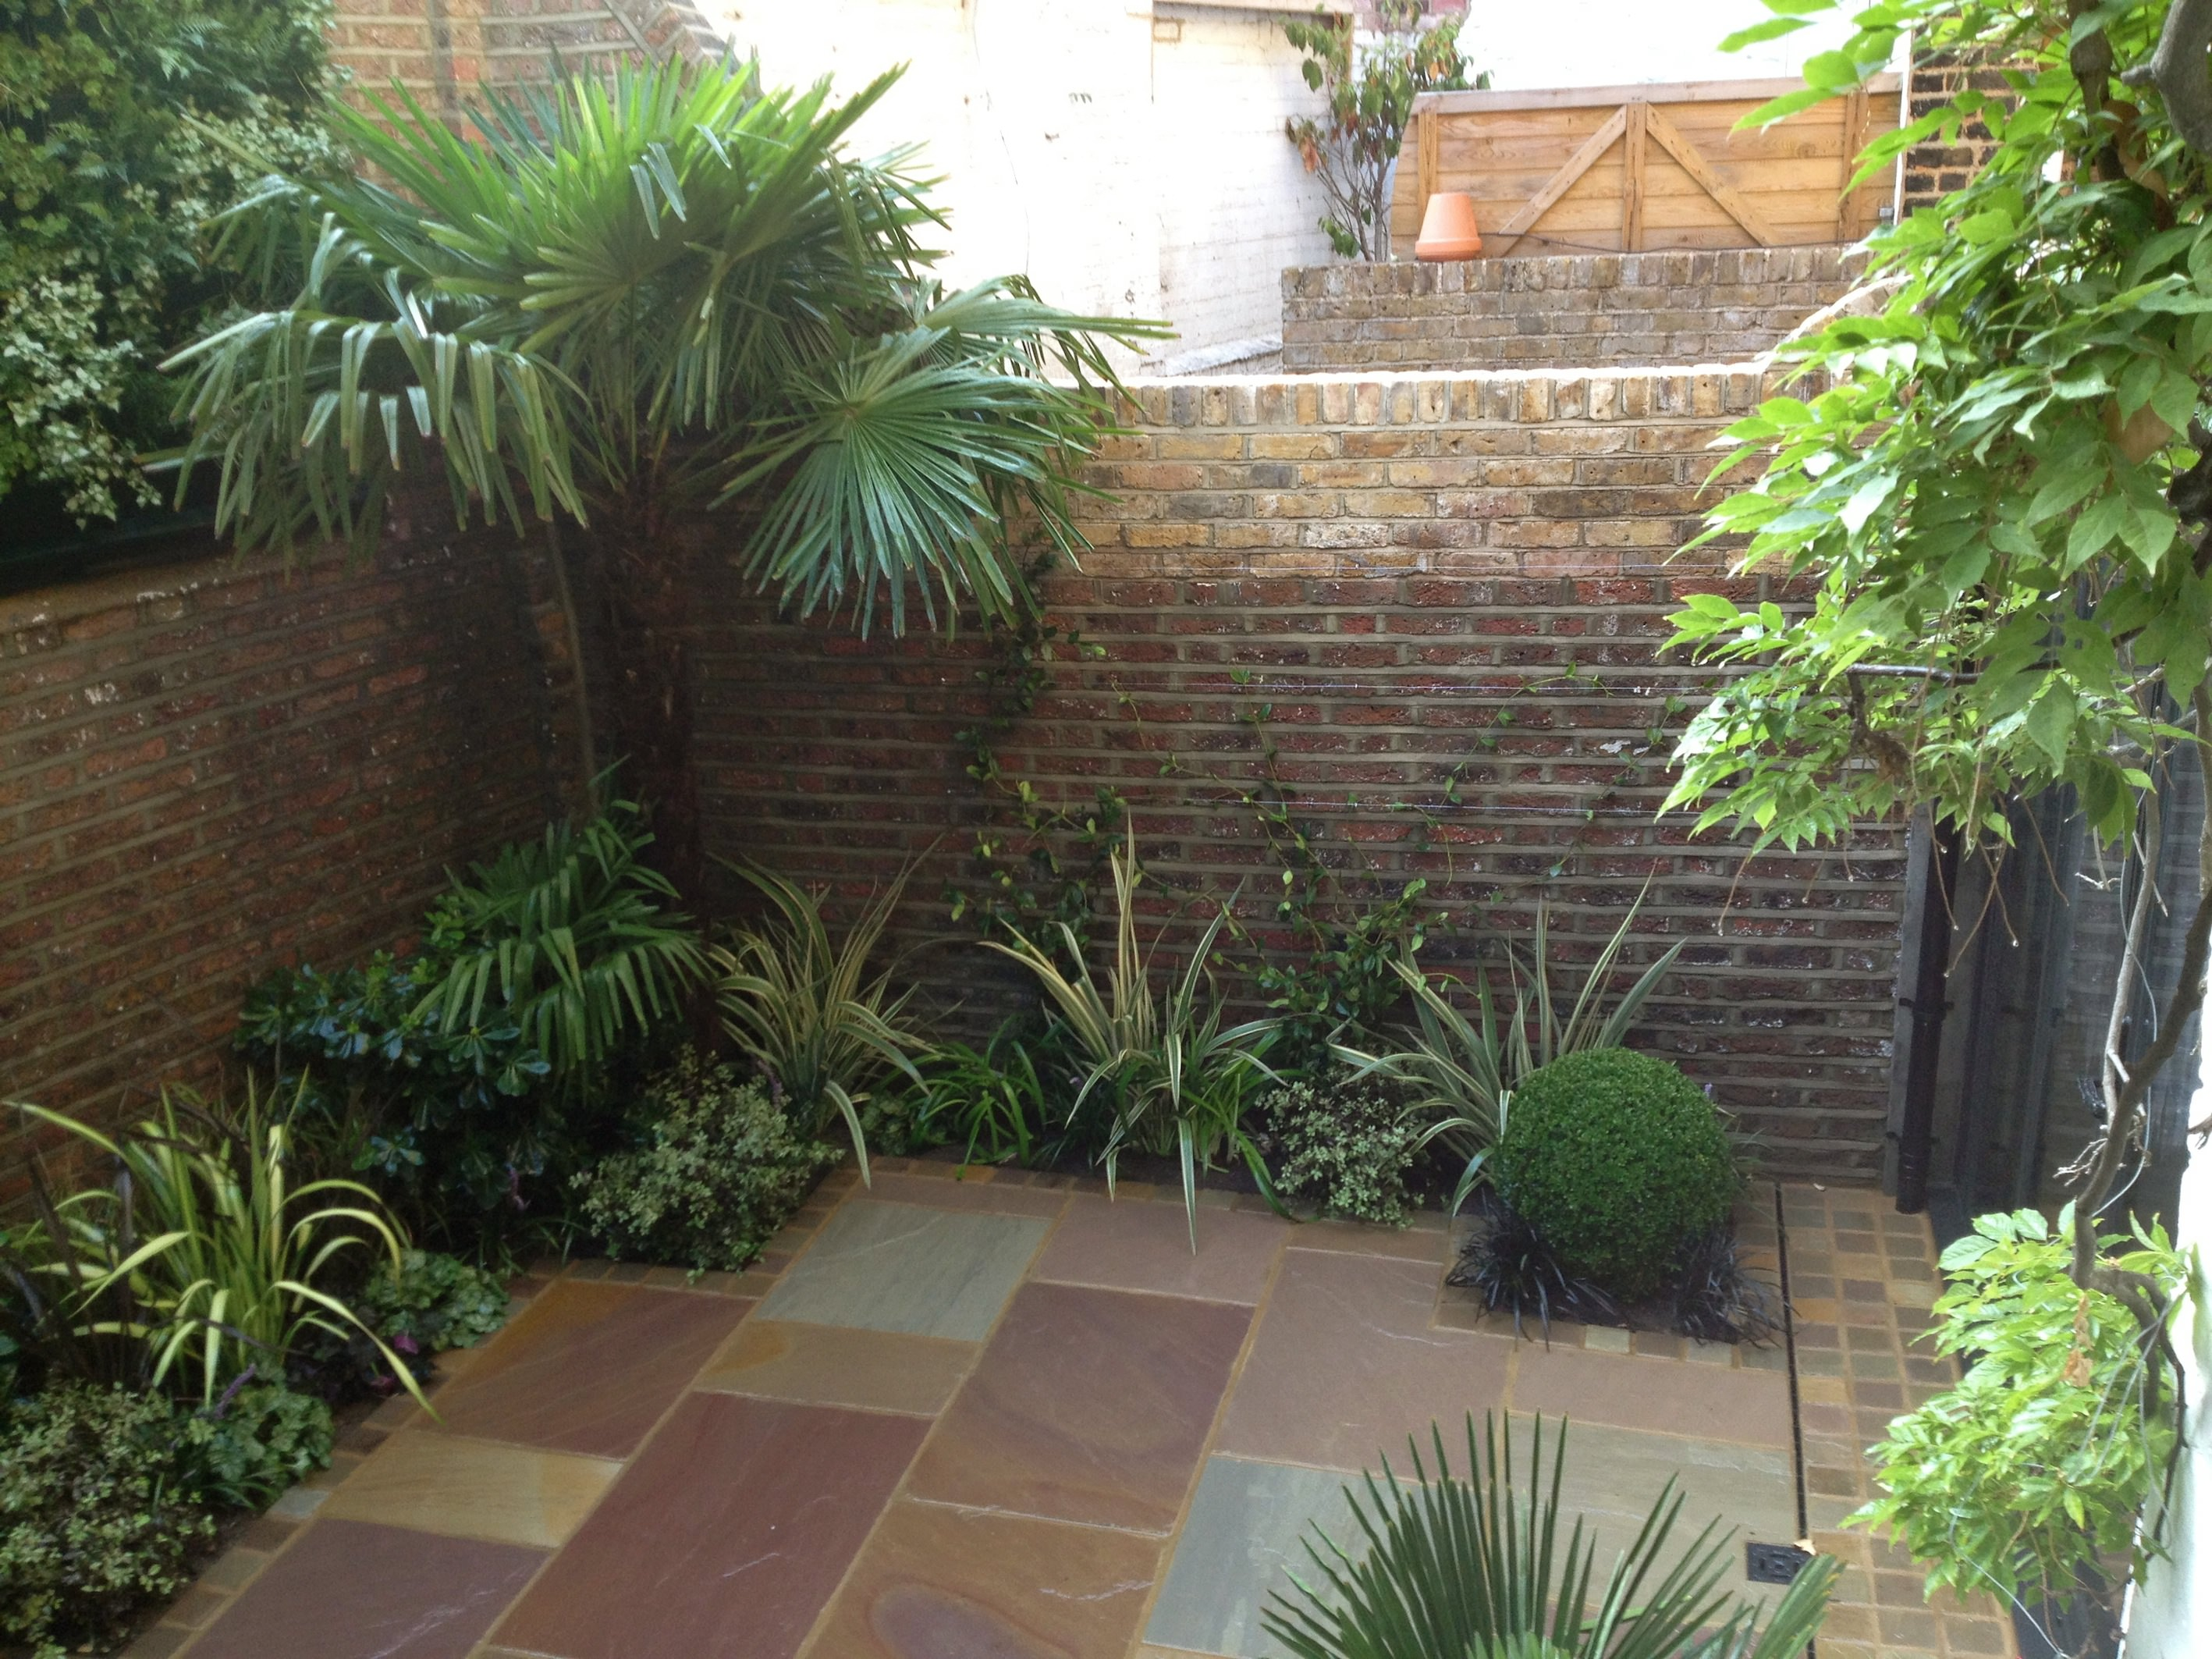 Low maintenance garden designs garden club london for Small low maintenance gardens